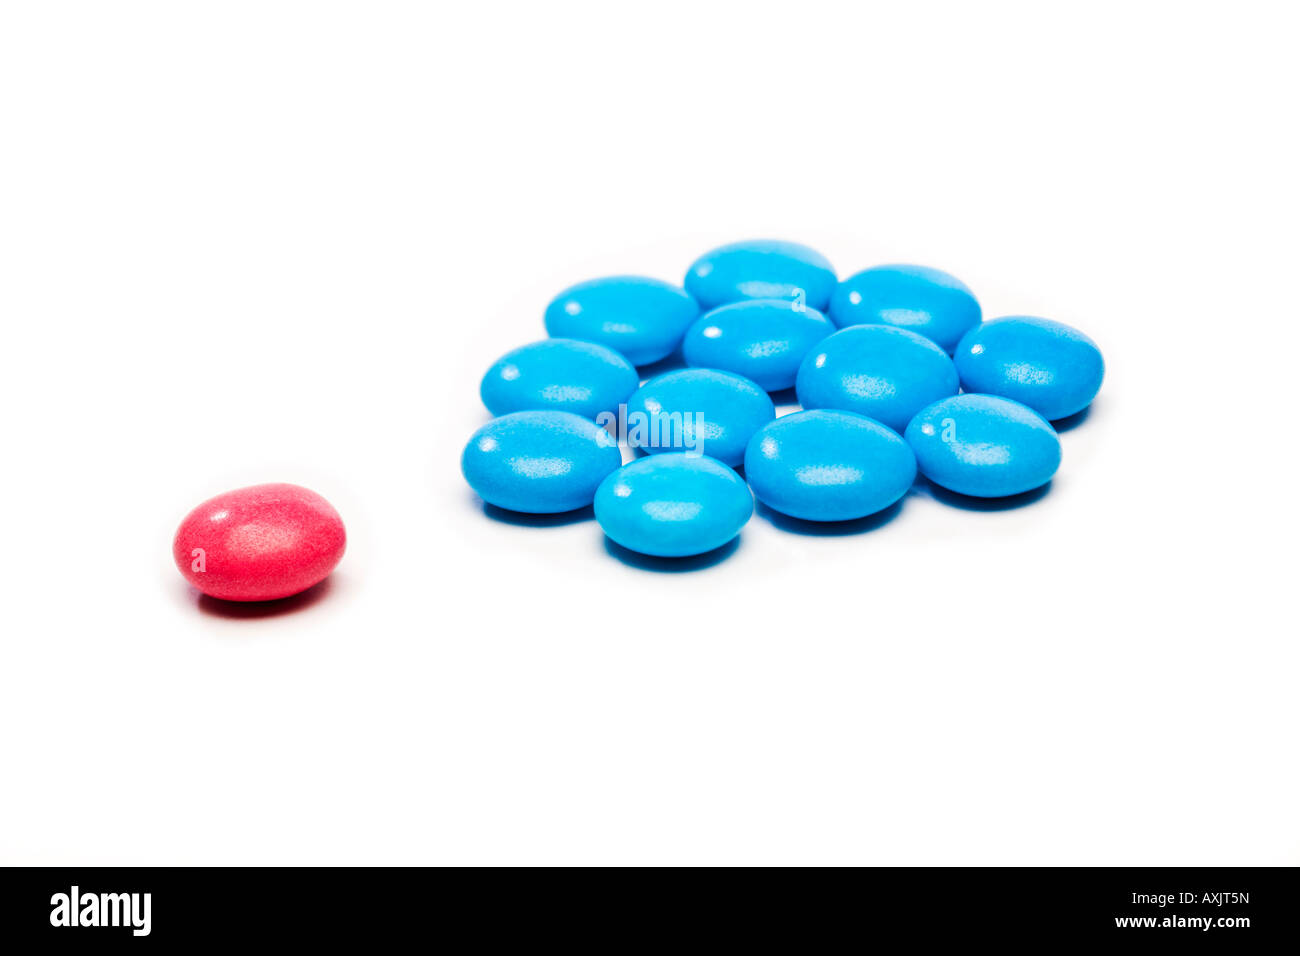 Coloured candy used to illustrate the concept of difference, exclusion or discrimination Stock Photo